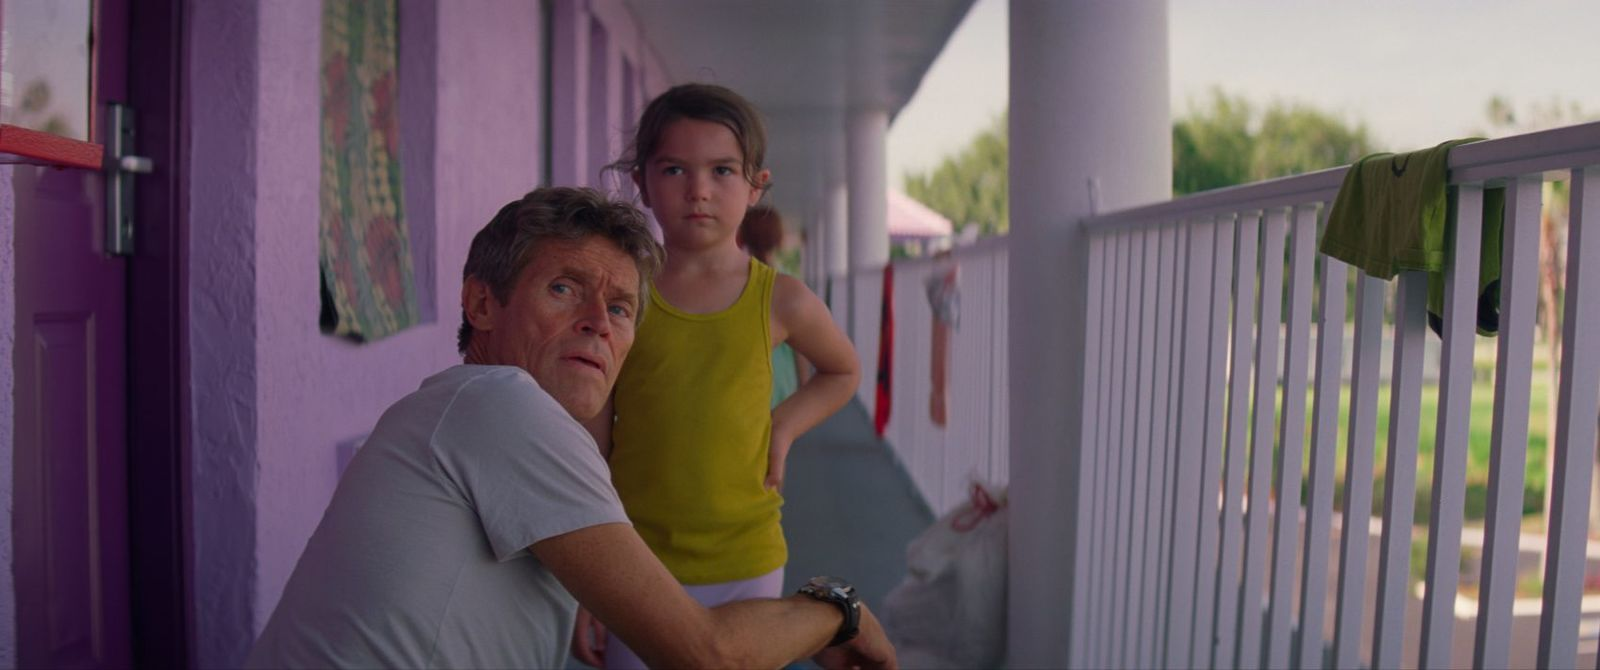 THE FLORIDA PROJECT (A24) .jpg